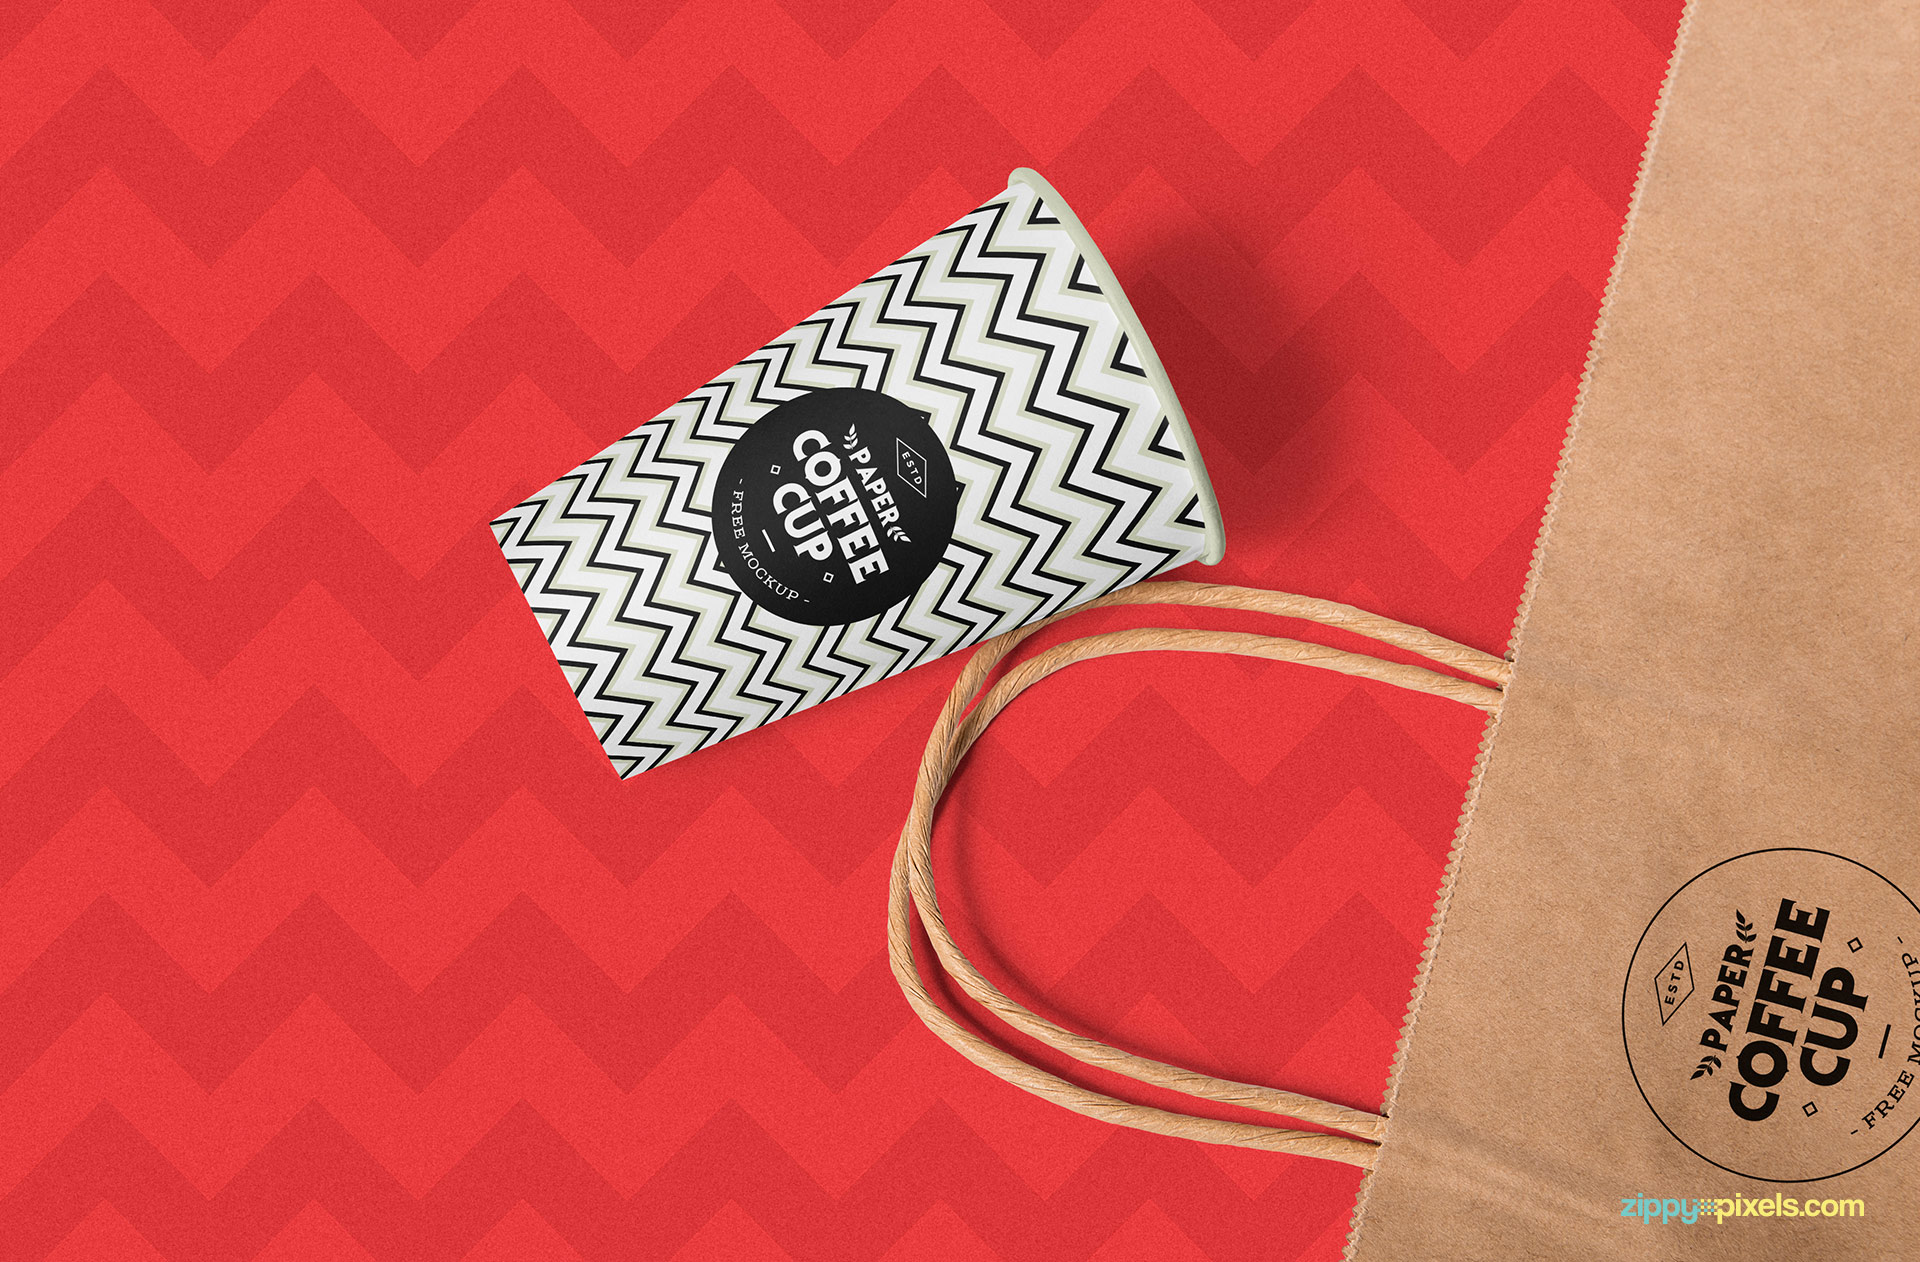 Amazing zig zag background of the cup mockup PSD.